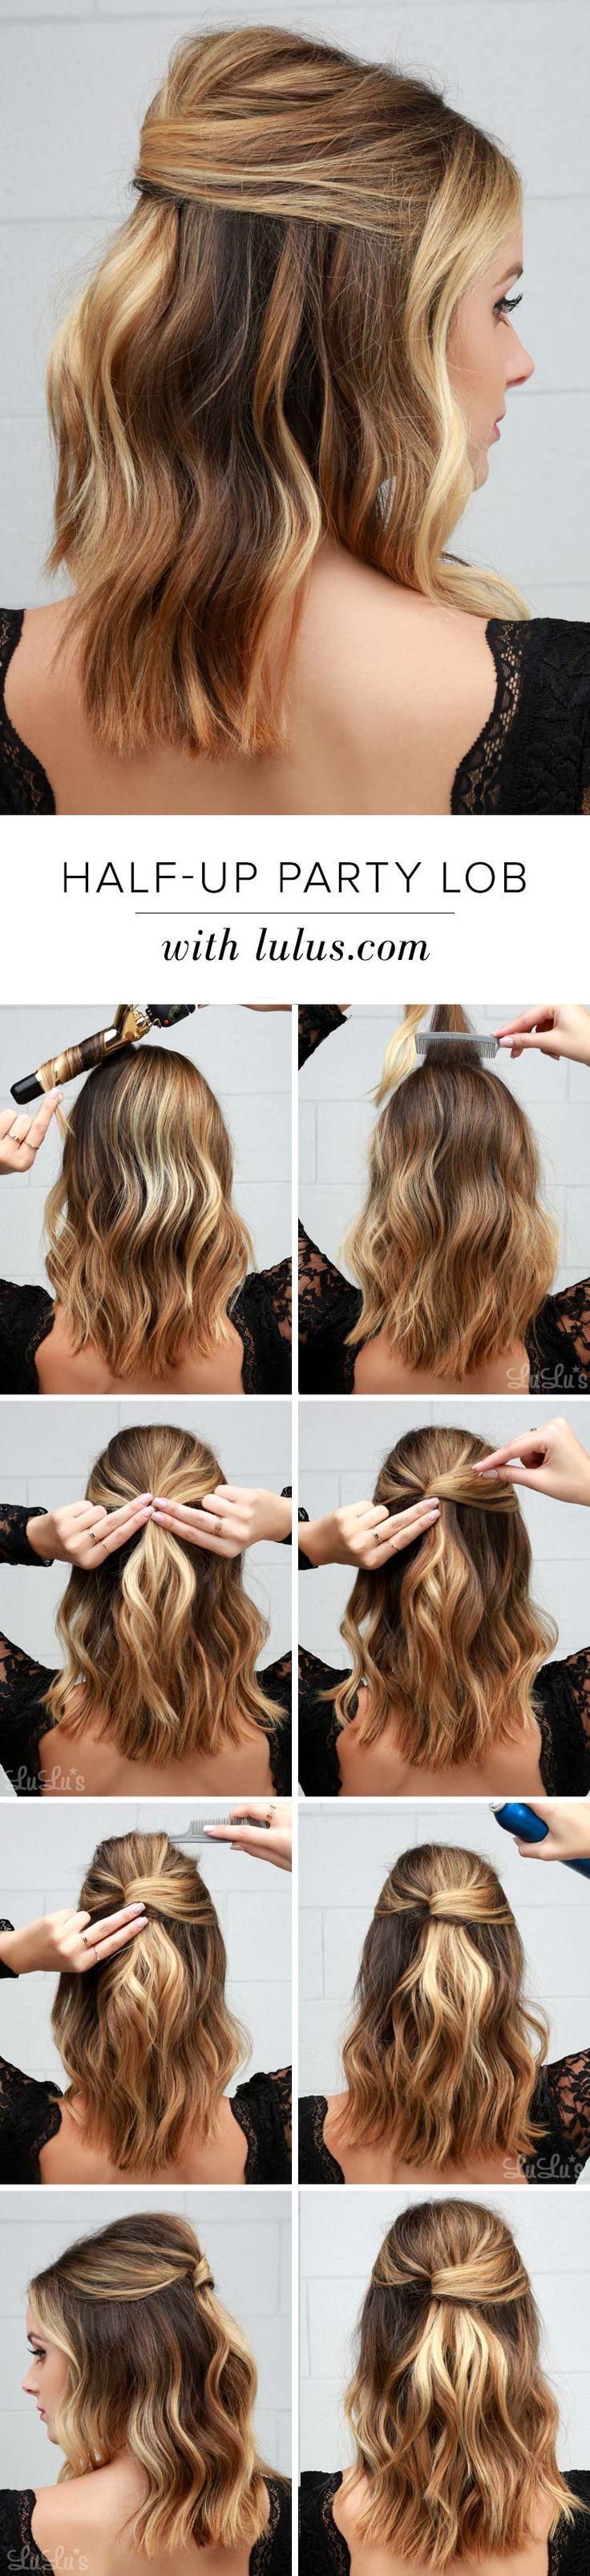 269 best Hair and Beauty images on Pinterest